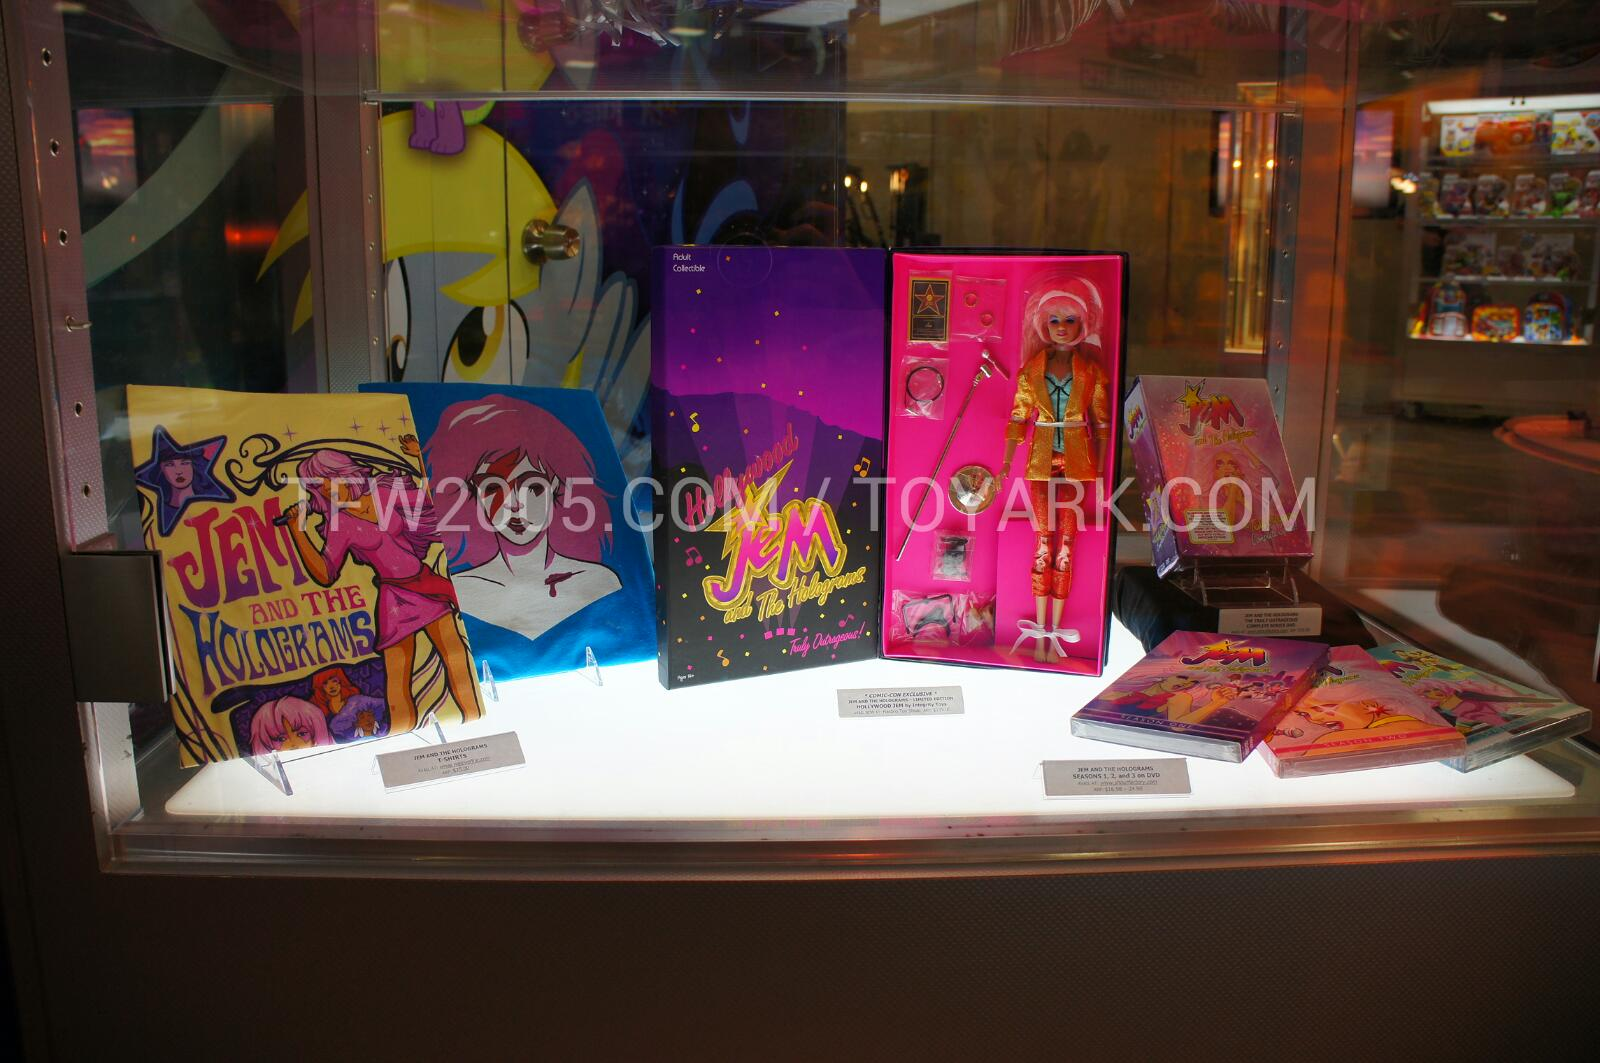 [IMG]http://www.toyark.com/news/attach/1/9/9/9/SDCC-2012-Jem-Display-005_1342042694.jpg[/IMG]